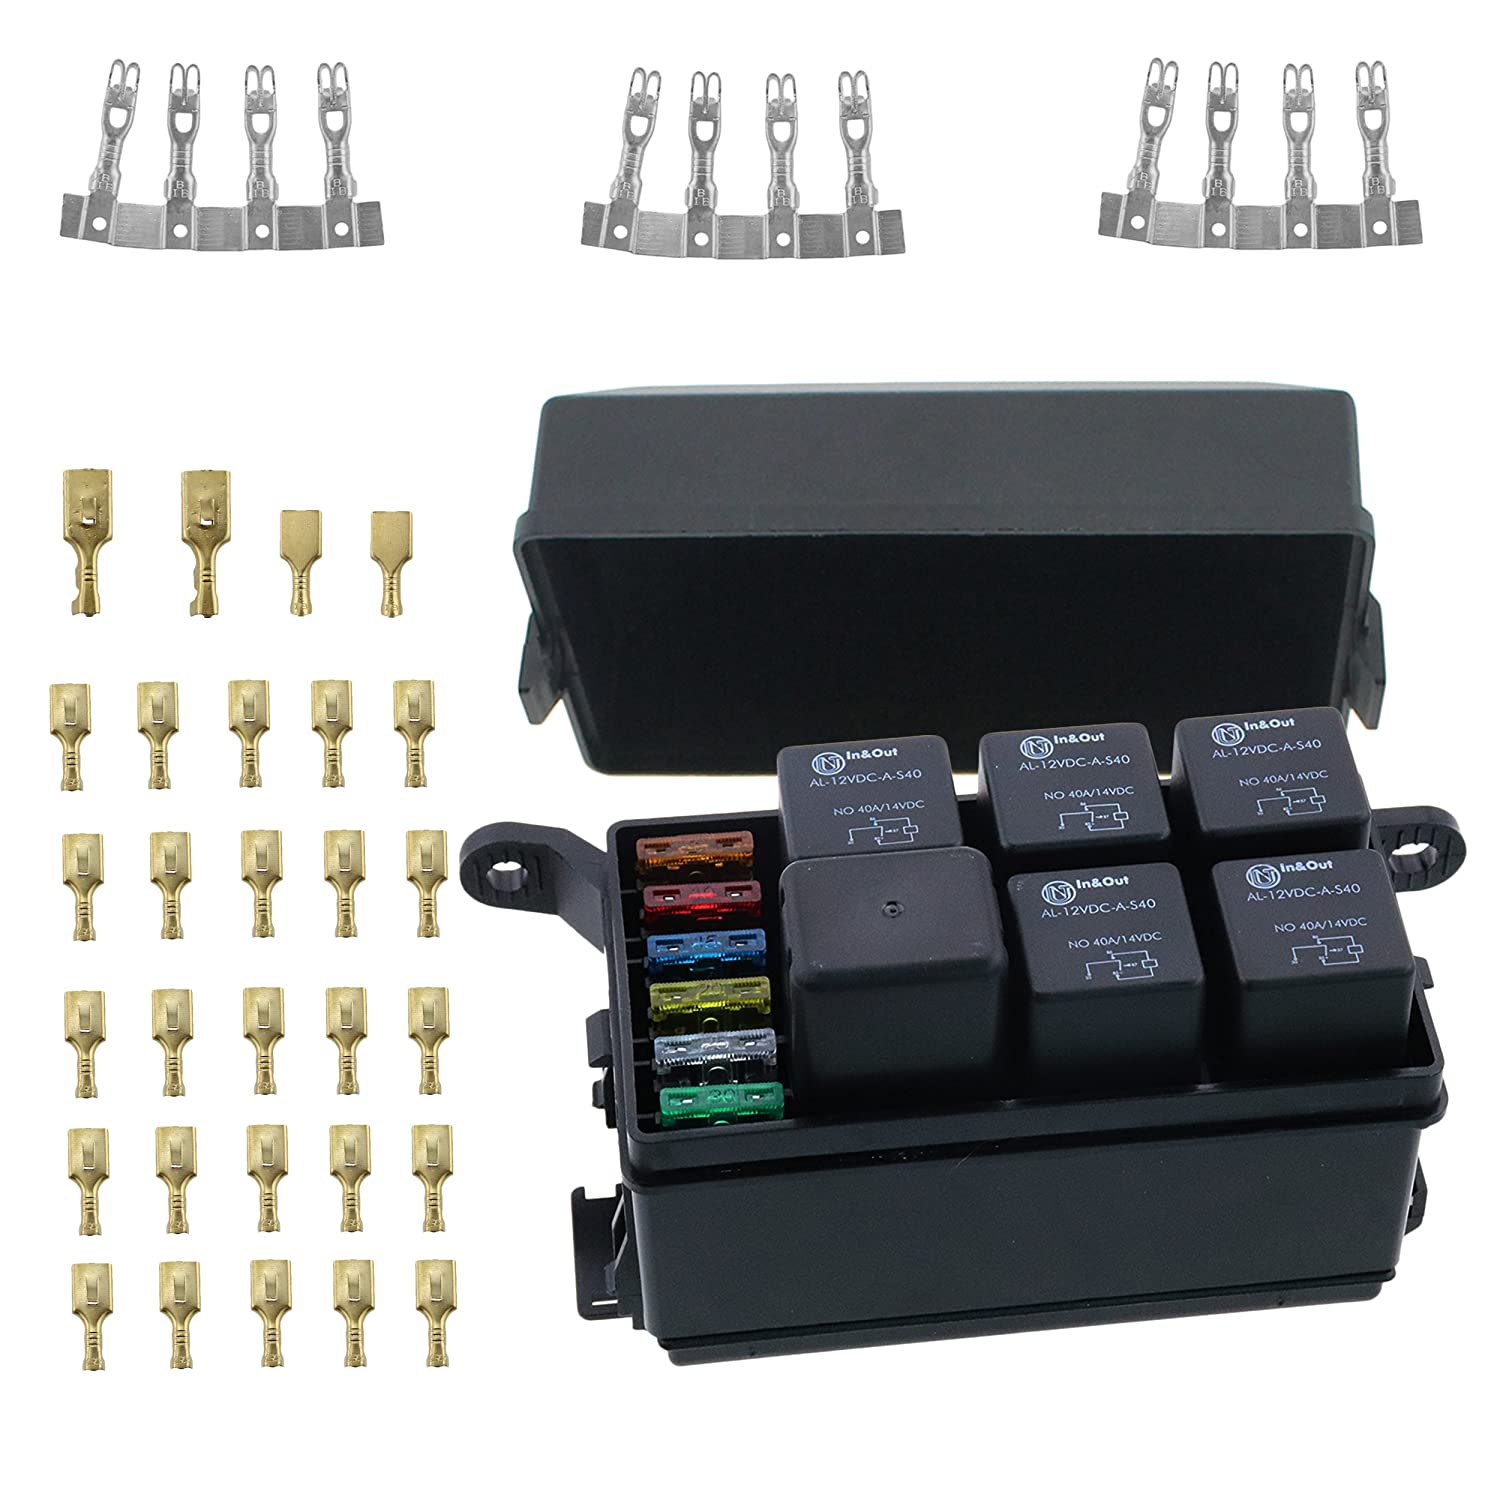 12 slot relay box 6 relays 6 blade fuses fuse relay box including fuses,4pins 12v 40a relays and metallic pins for automotive marine and boat automotive fuse relay box automotive fuse and relay box #2